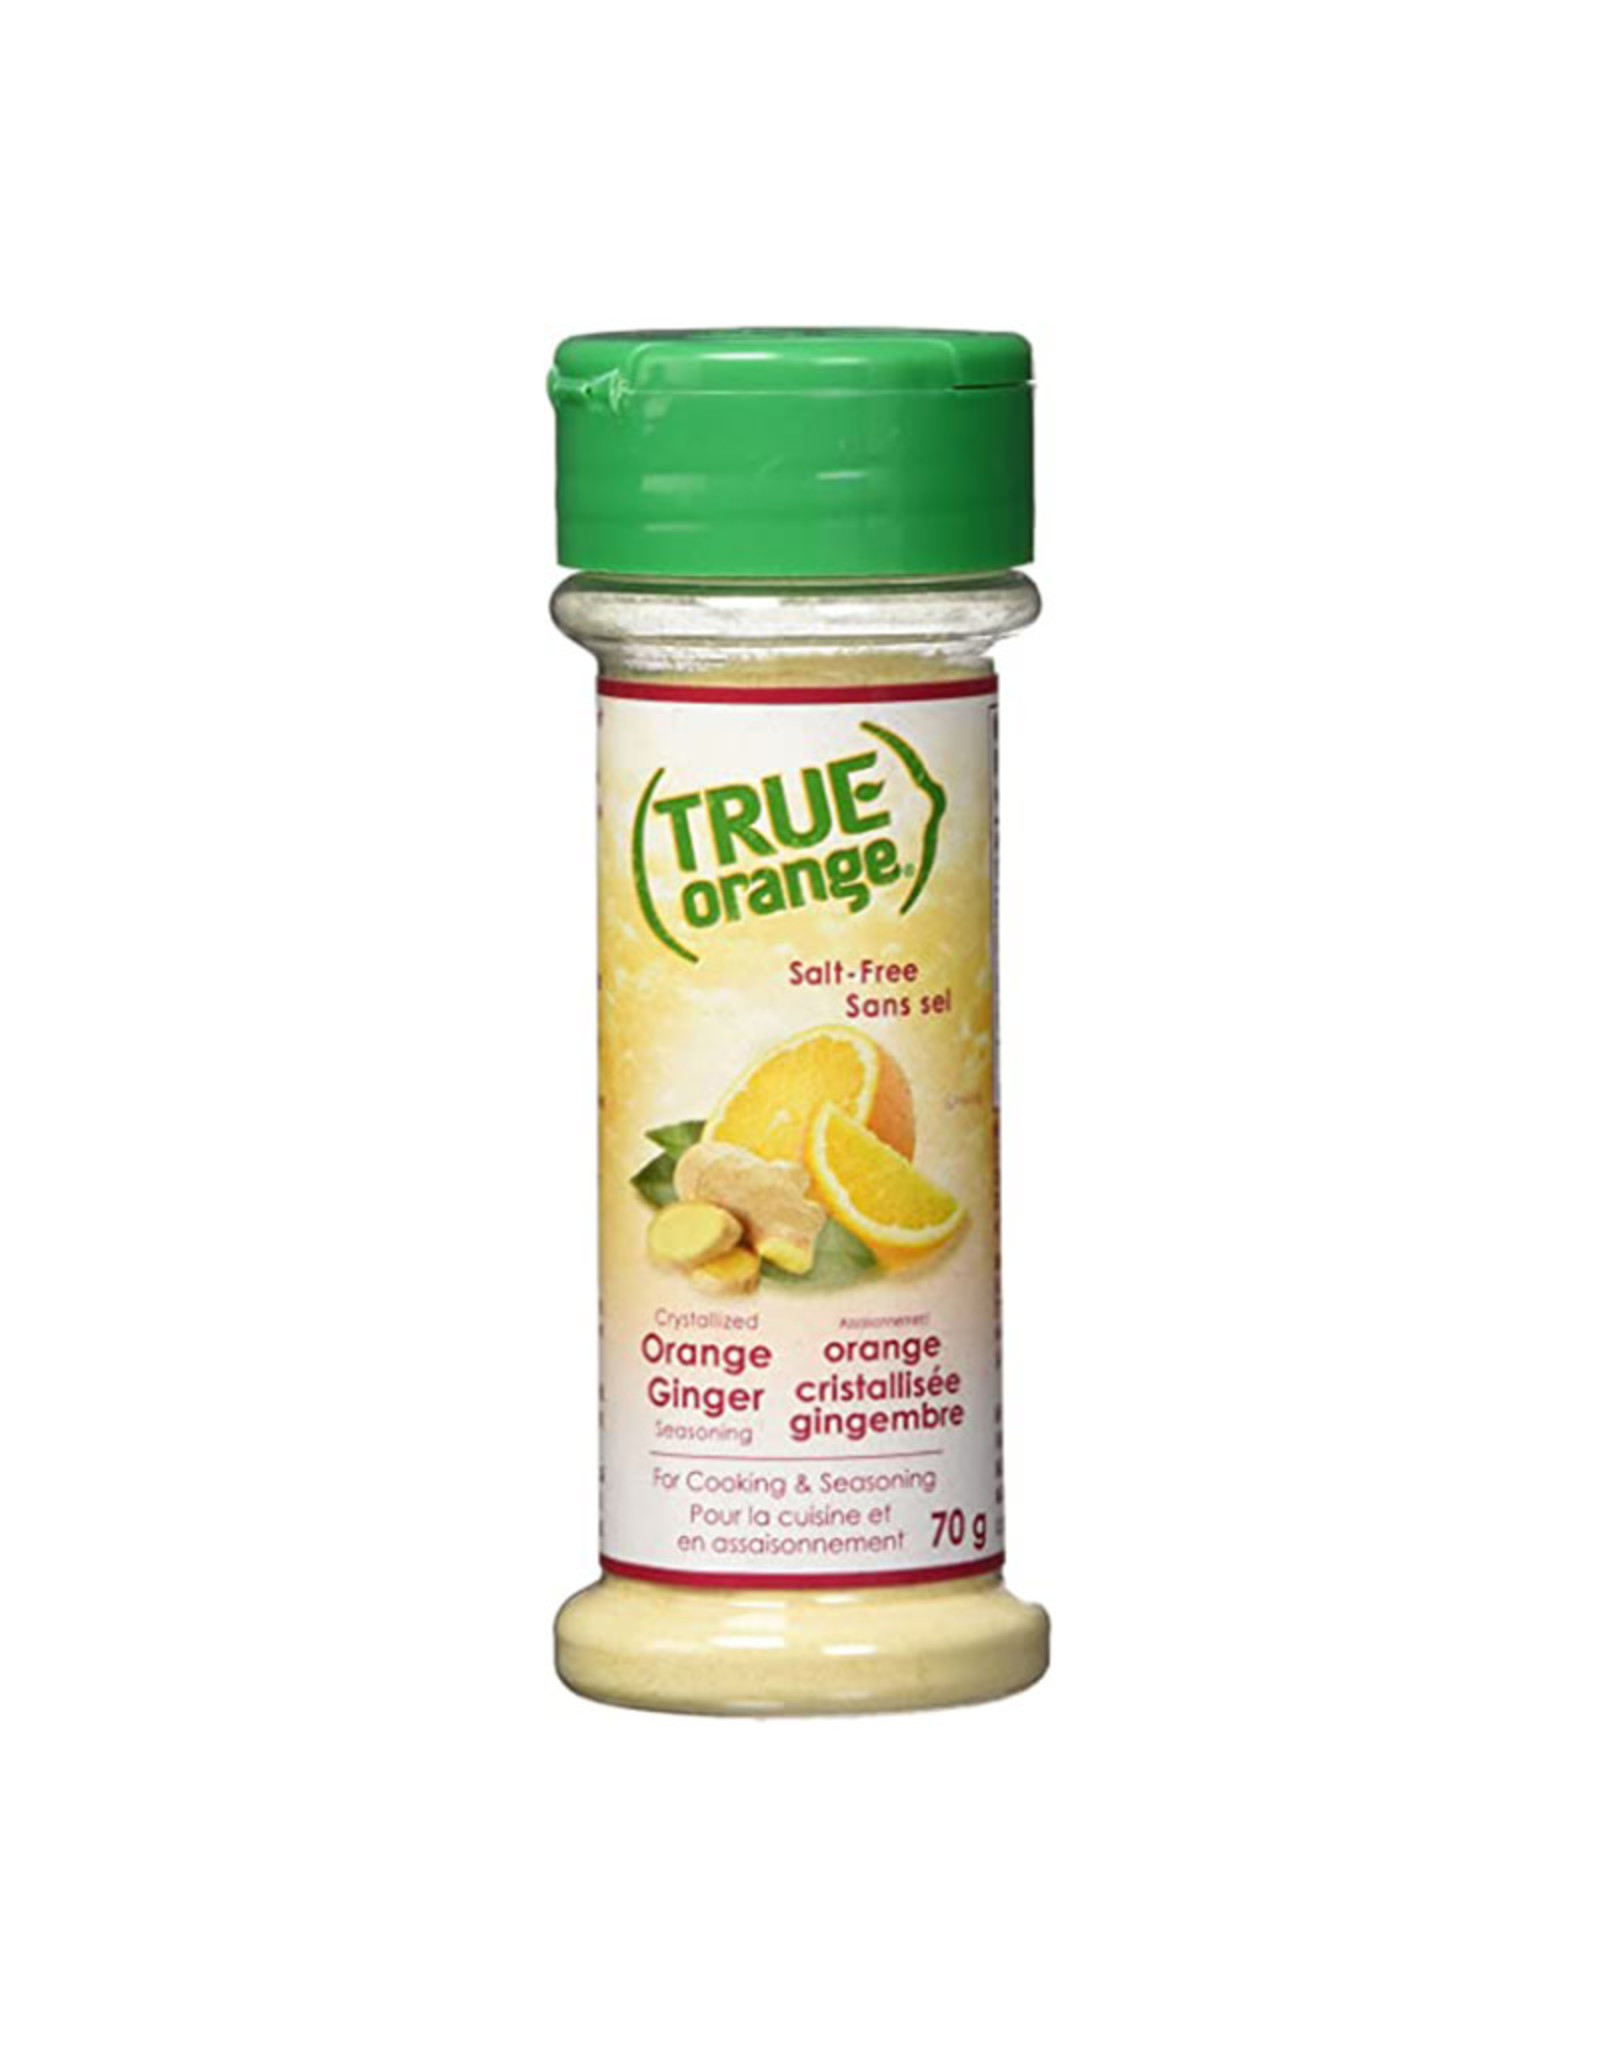 True Citrus True Citrus - Assaisonnement, Gingembre à L'Orange (70g)